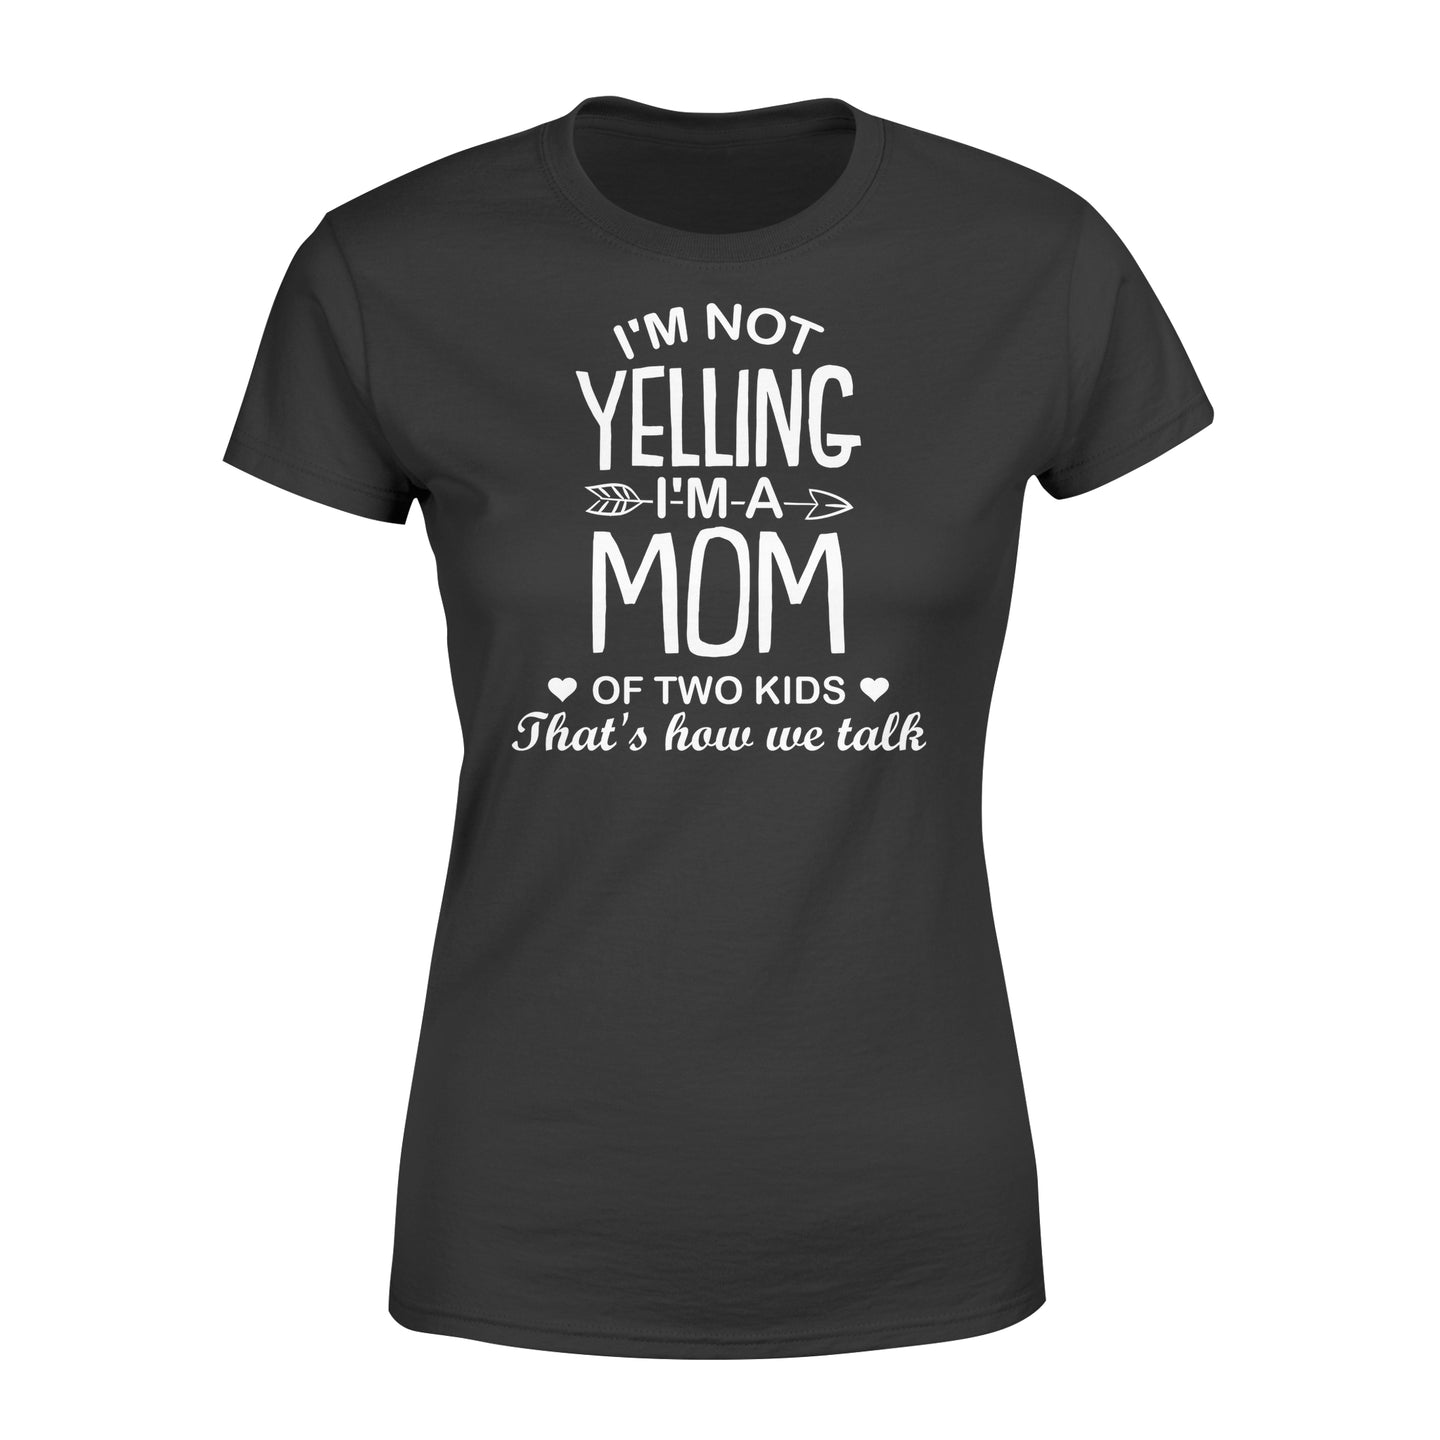 I'm Not Yelling I'm A Mom Of Two Kids - Standard Women's T-shirt